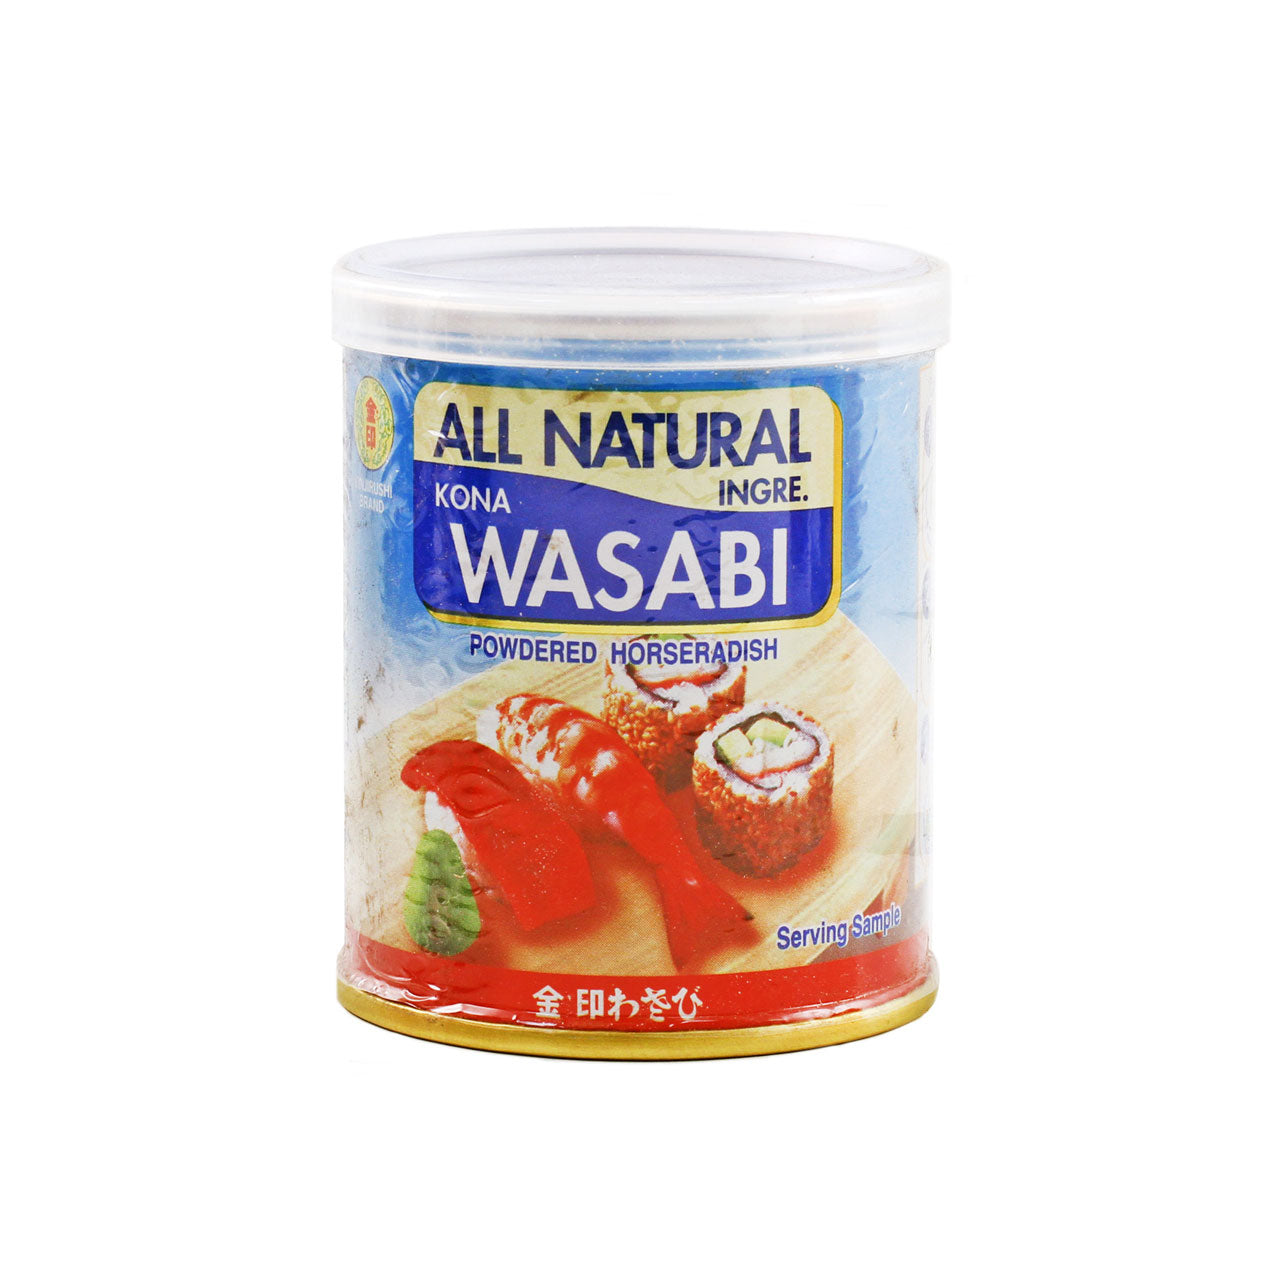 Kinjirushi All Natural Wasabi Powder Japanese Horseradish 1.76oz / 50g